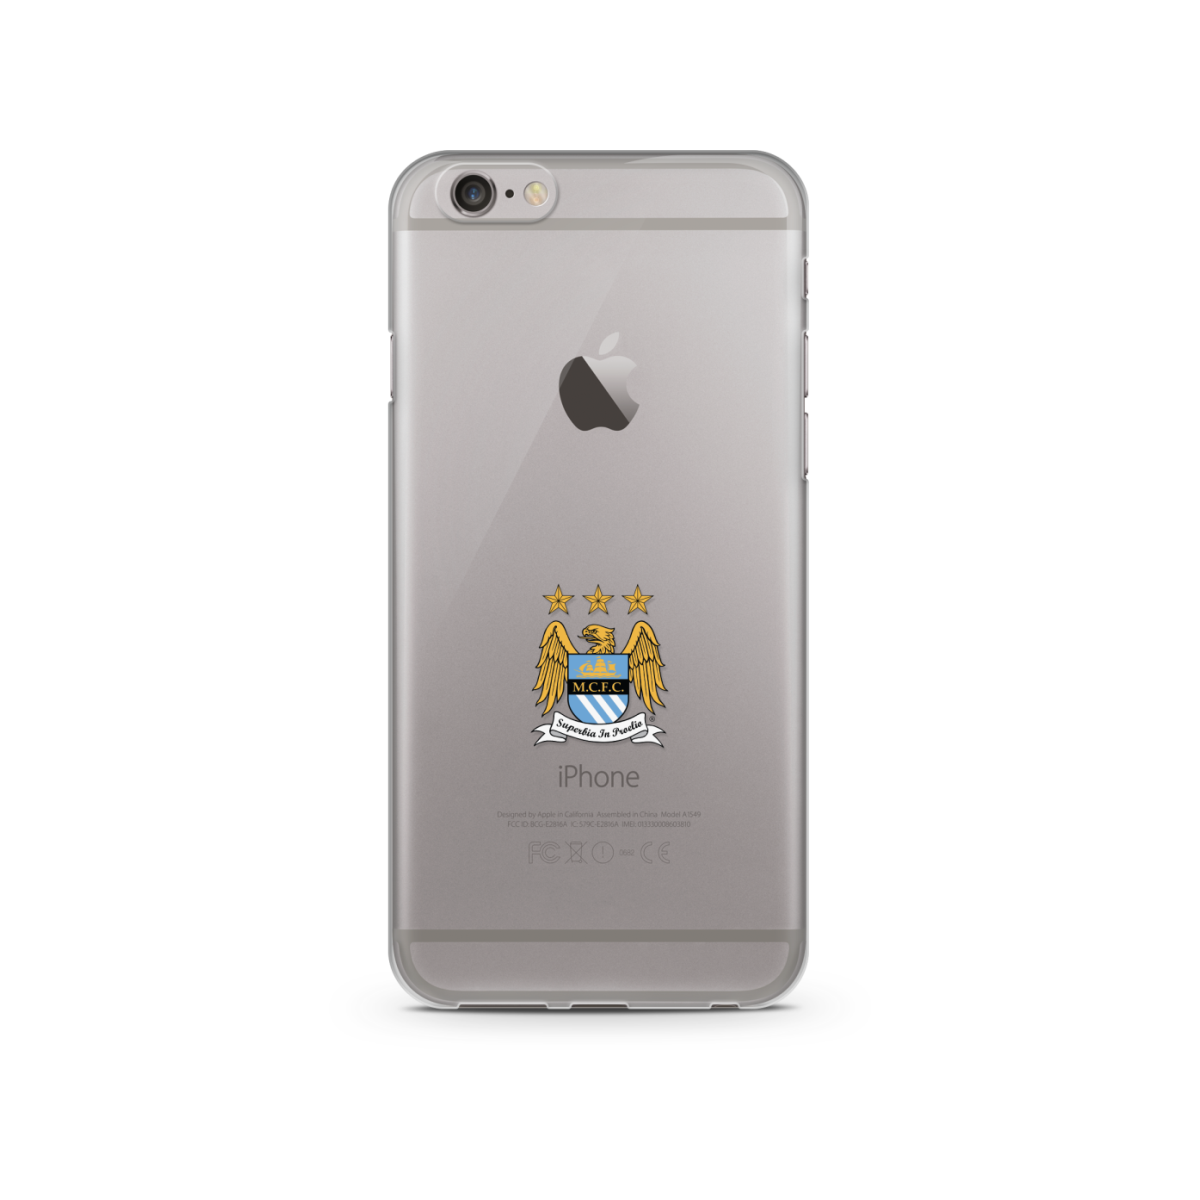 InToro Manchester City FC iPhone 6 Case